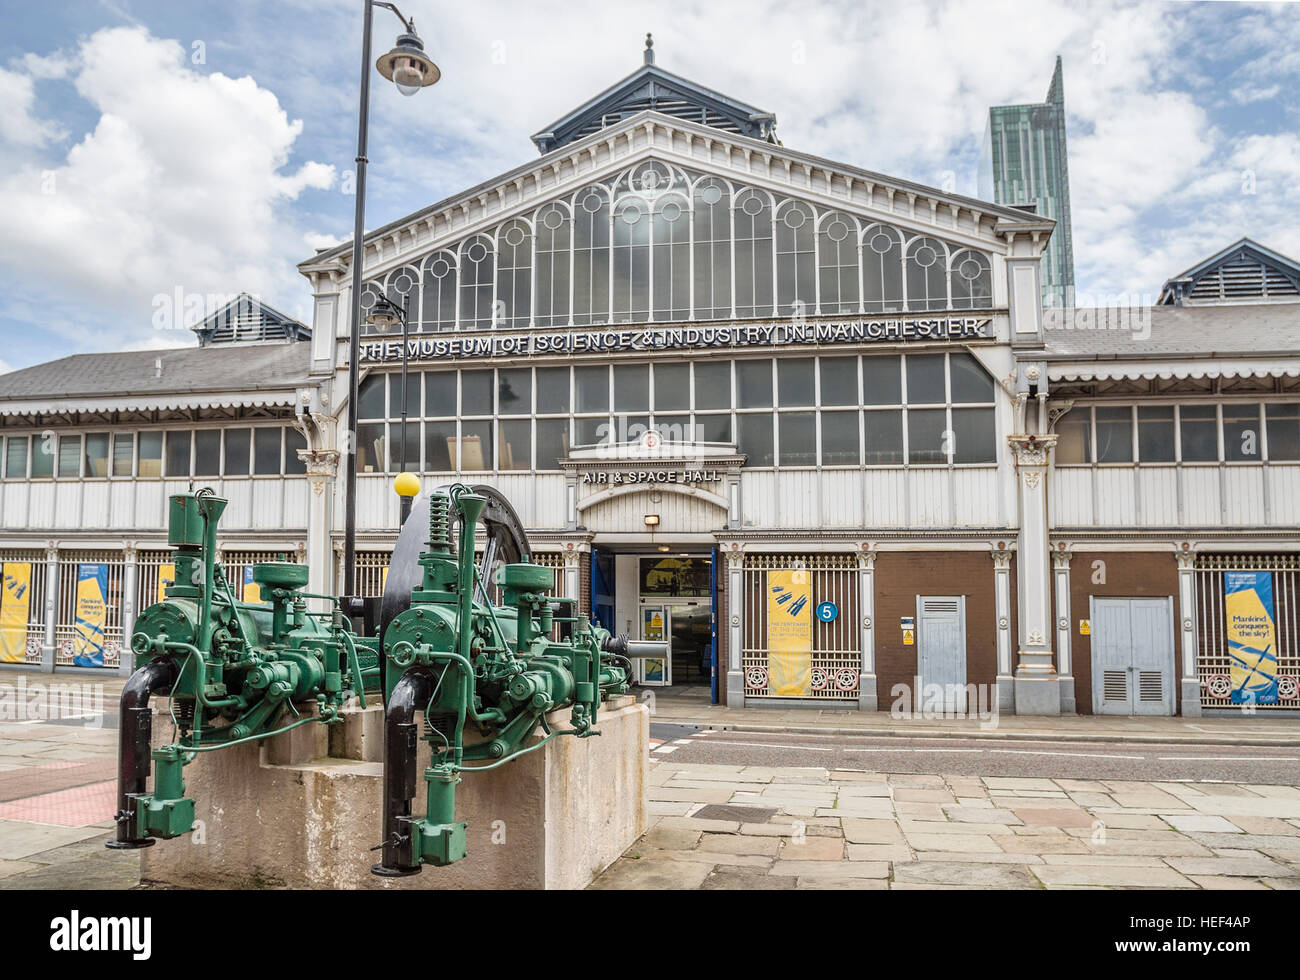 The Museum of Science and Industry in Manchester (MOSI), located in Manchester, England, is a large museum devoted - Stock Image